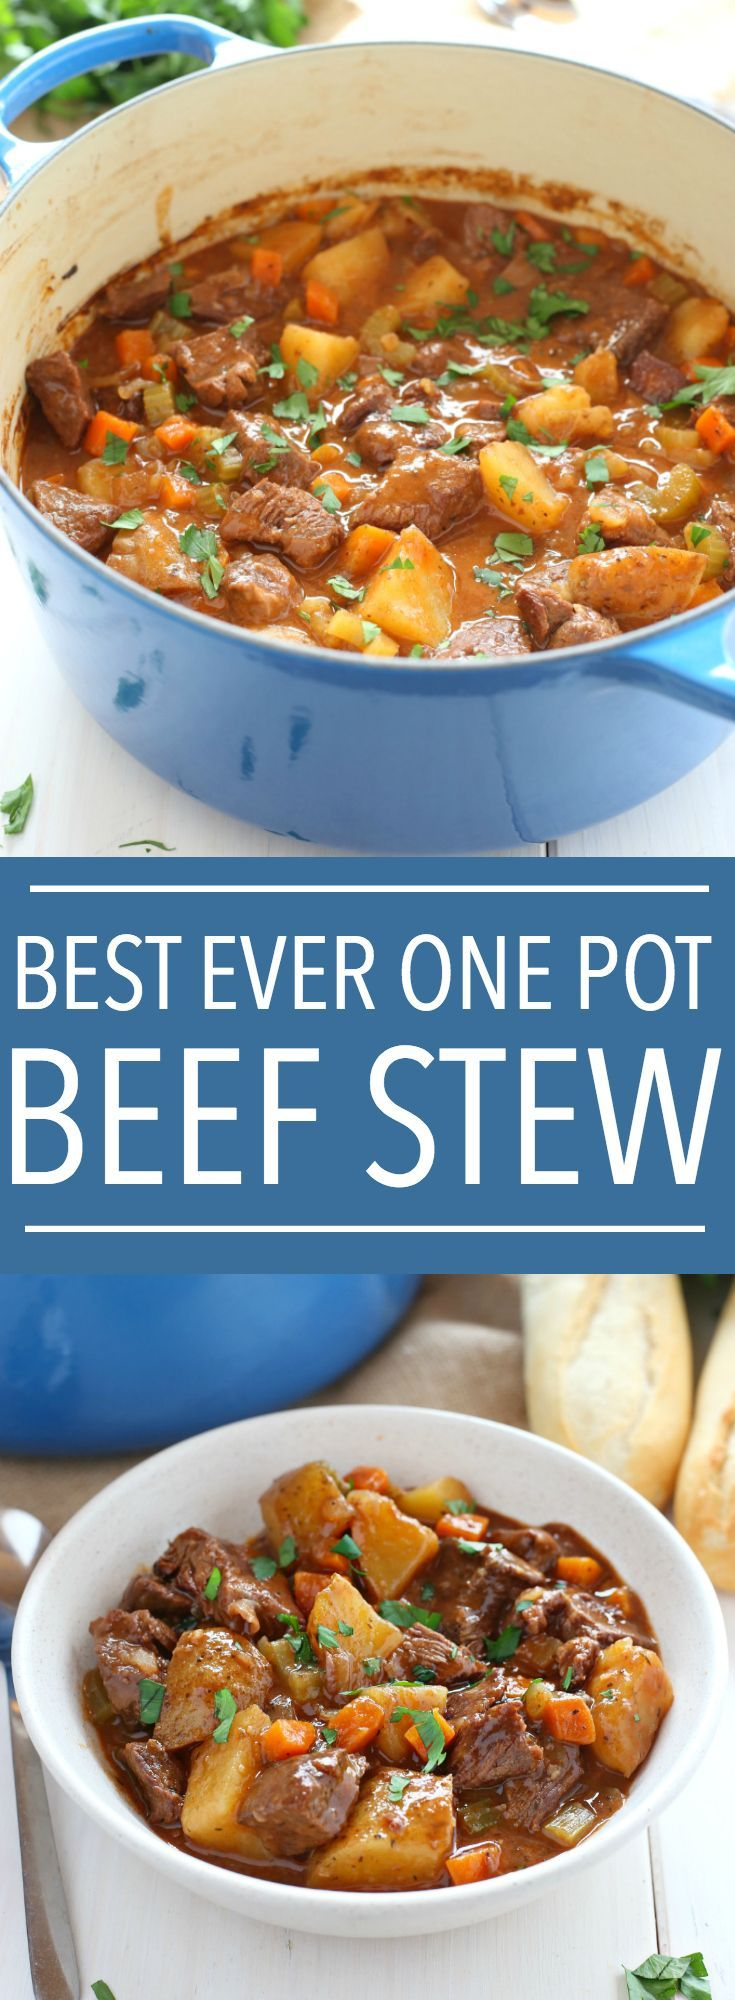 This Best Ever One Pot Beef Stew is an easy, classic beef stew recipe that cooks to perfection on the stove top and in the oven. It's the best comfort food!